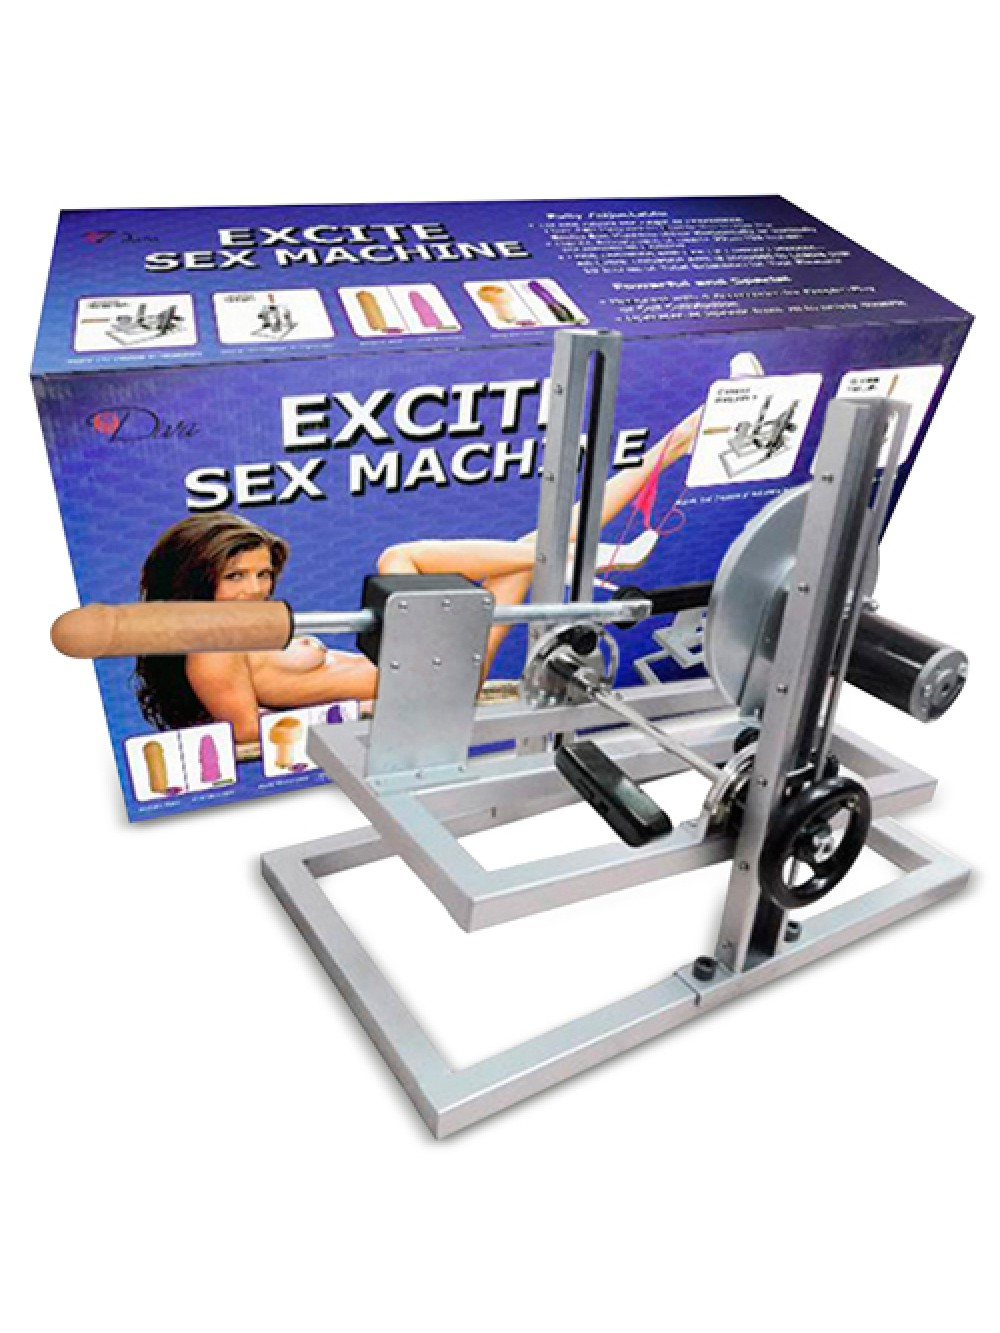 DIVA EXCITE SEX MACHINE